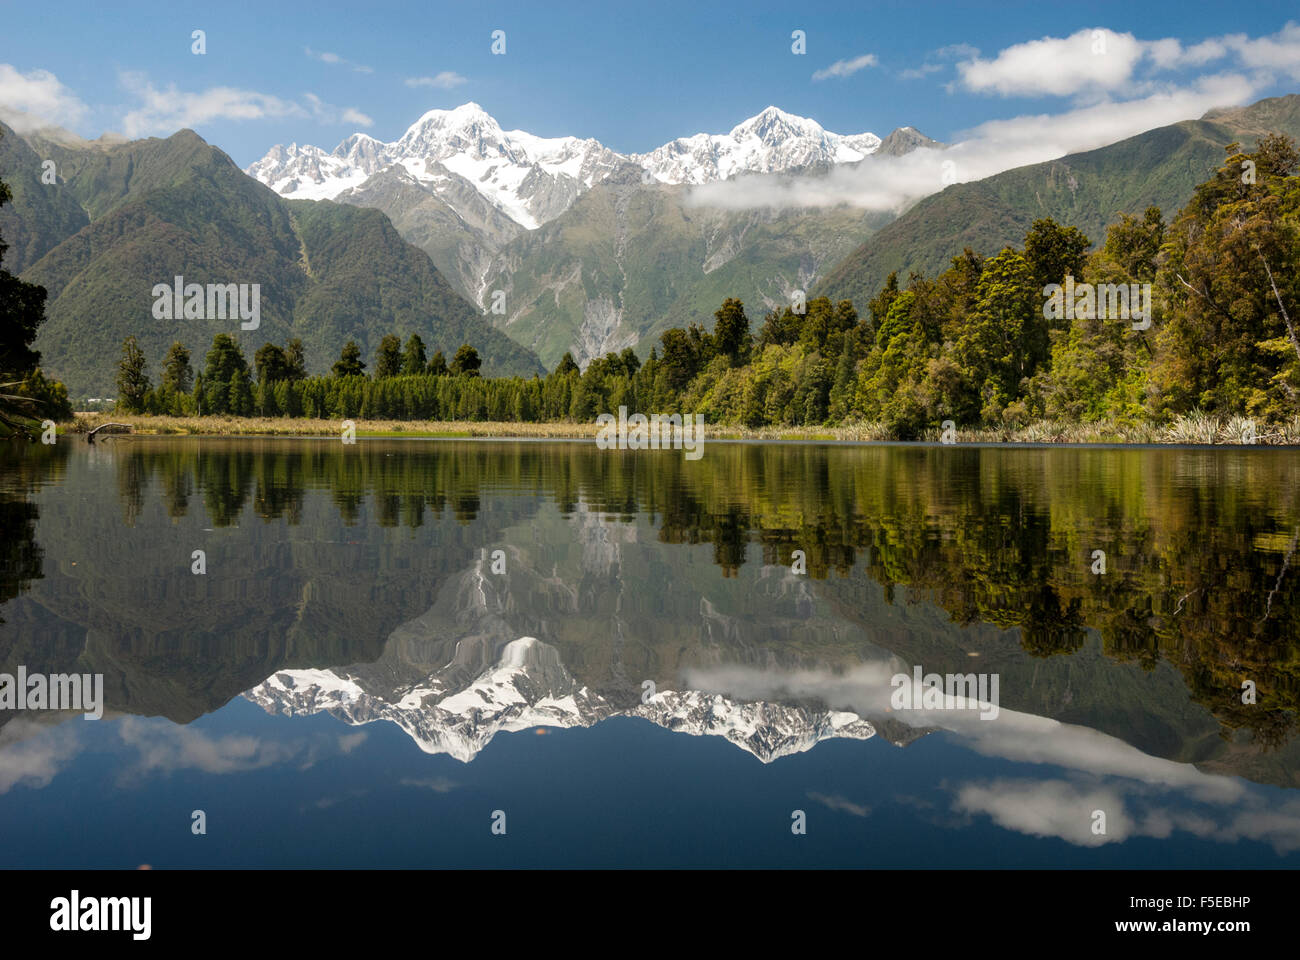 Alpes du sud du lac Matheson, Fox Glacier village, Westland, île du Sud, Nouvelle-Zélande, Pacifique Photo Stock